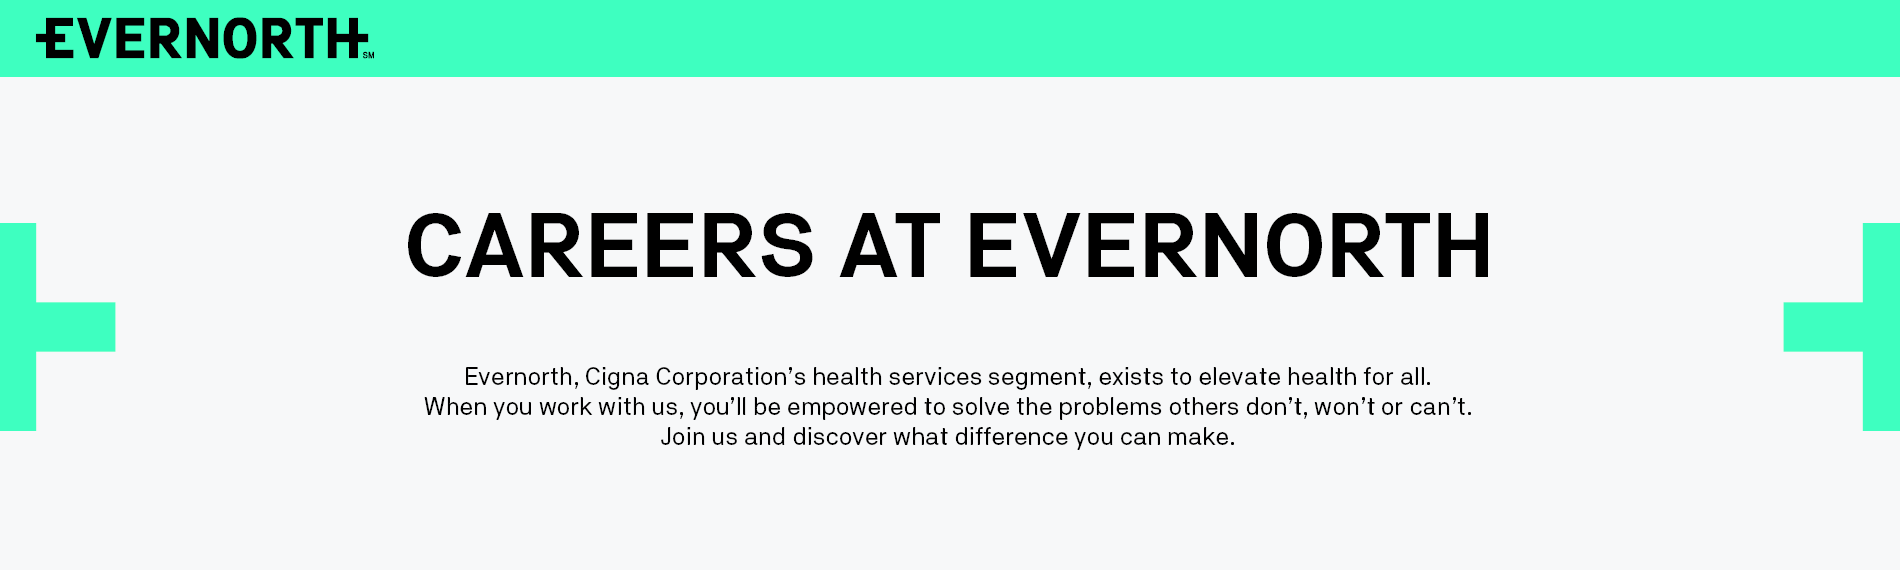 Careers at Evernorth